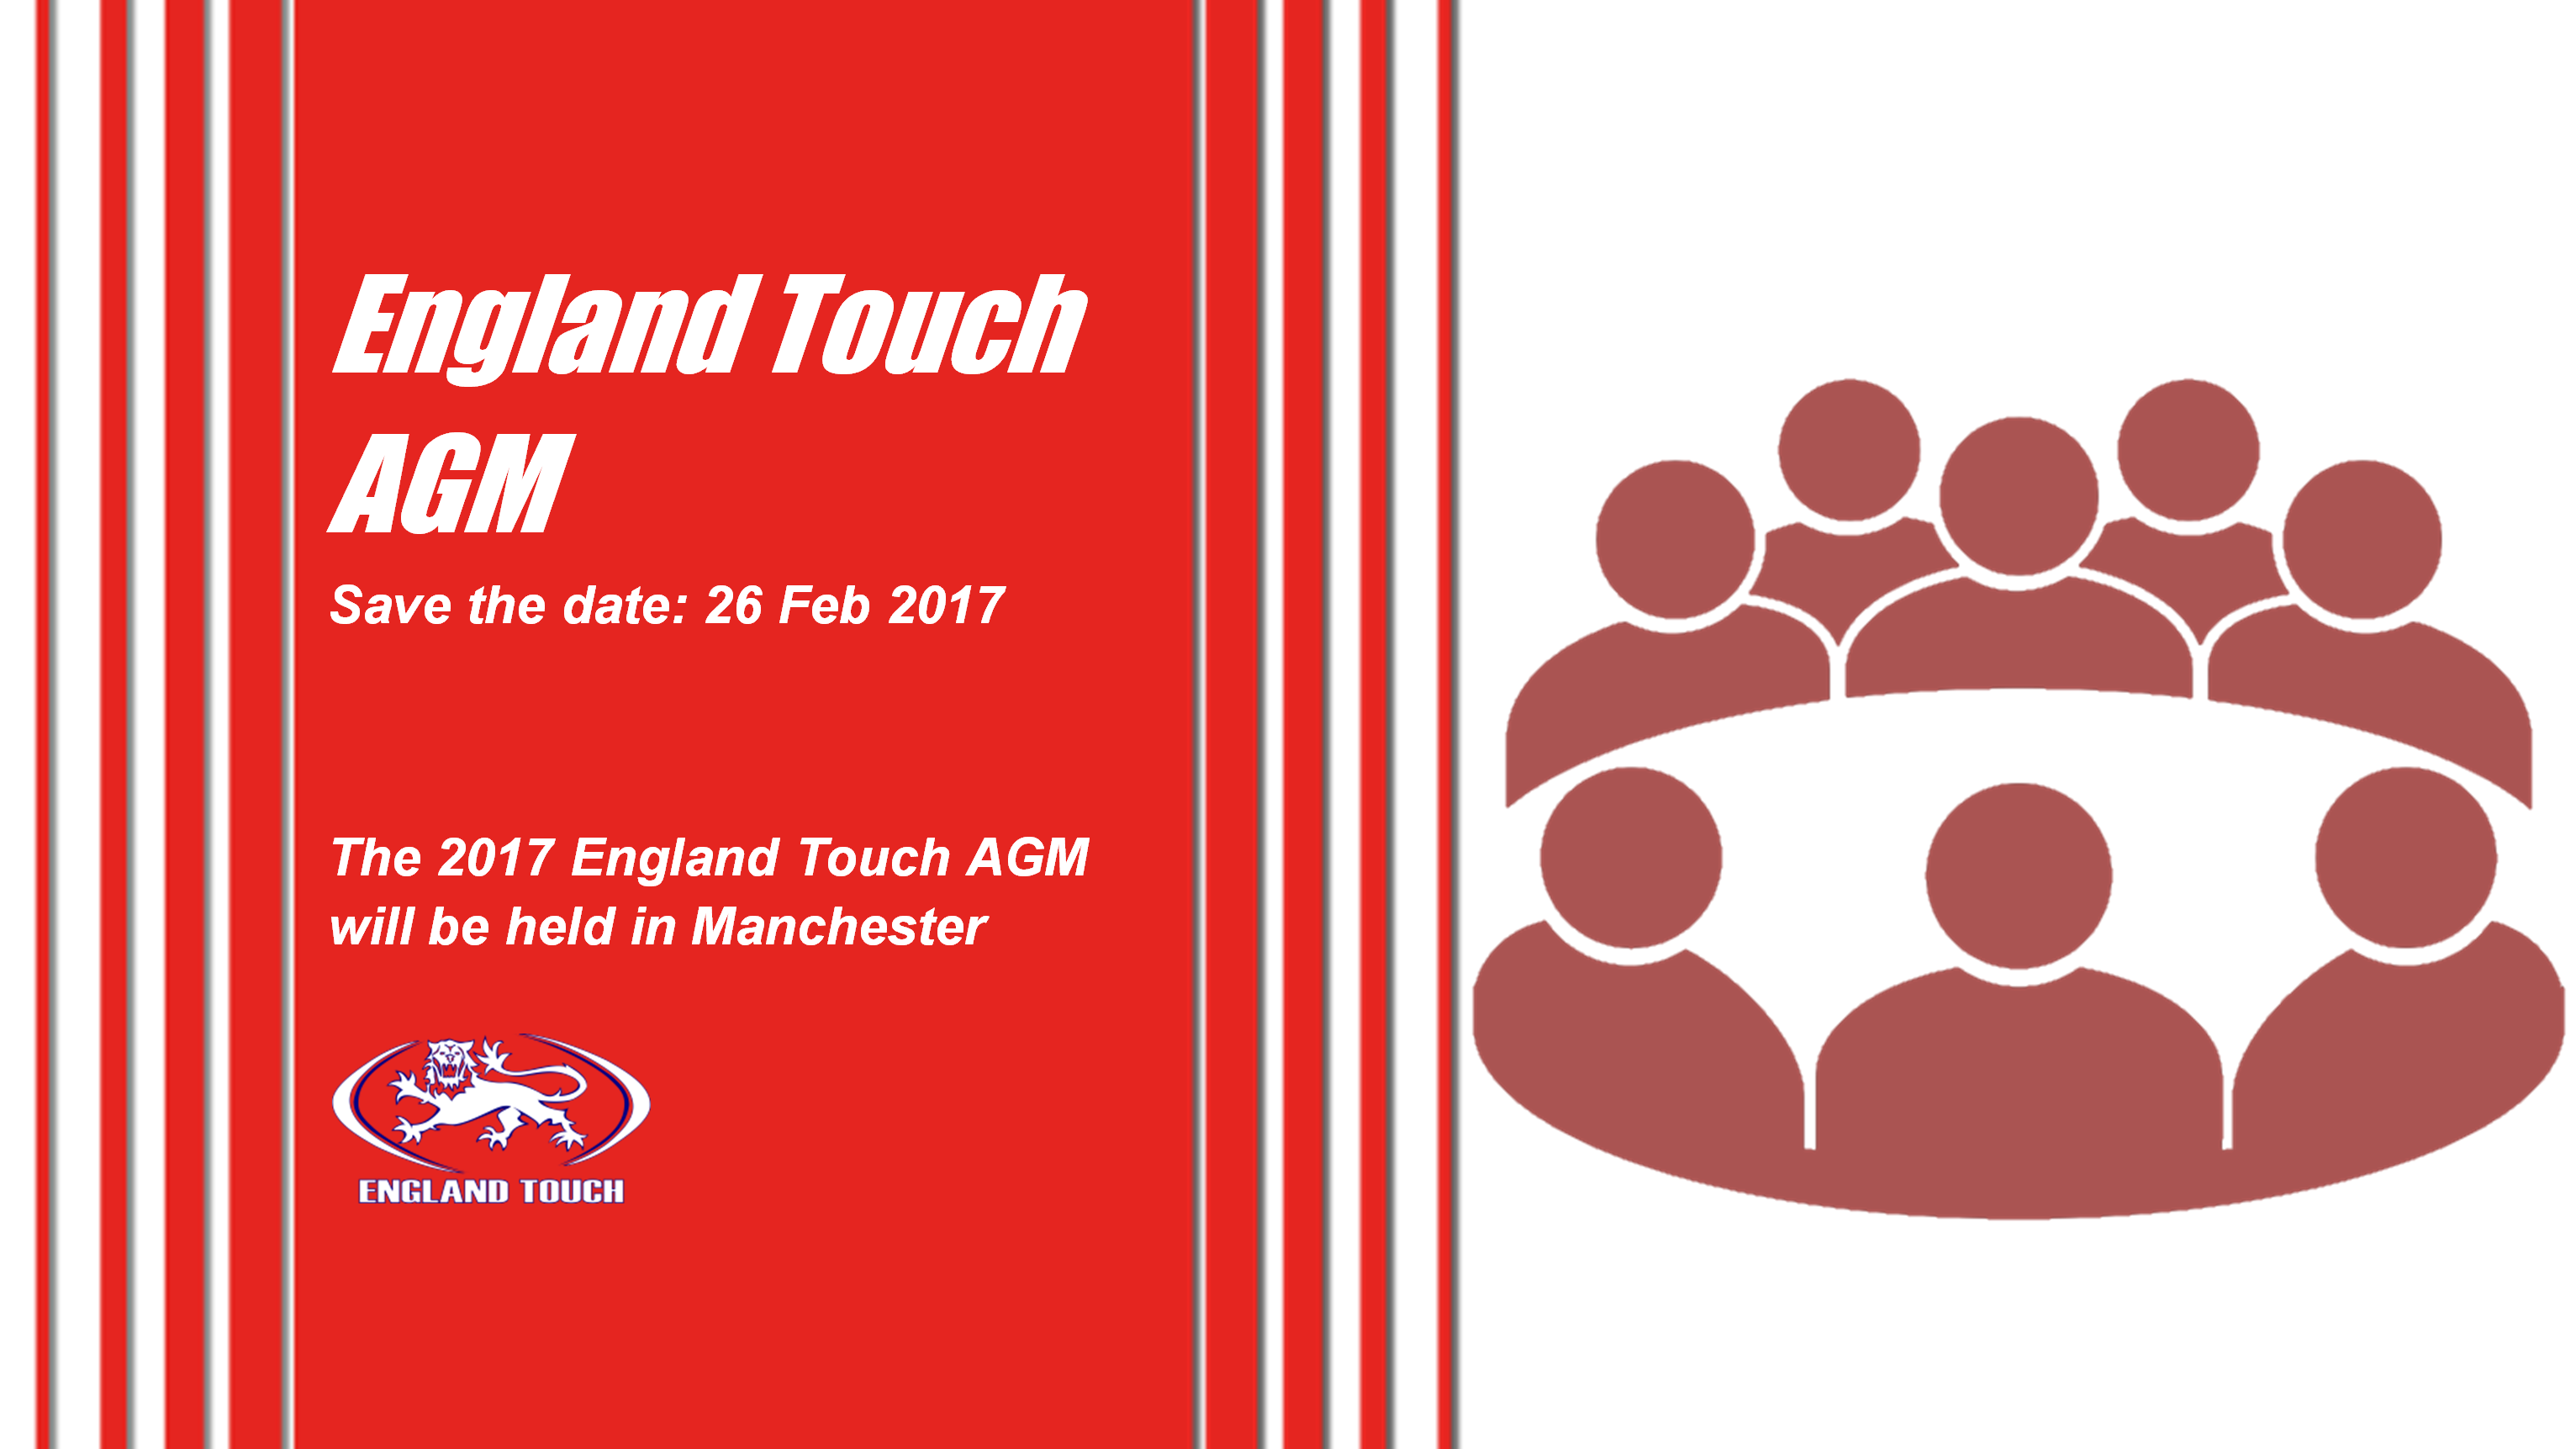 England Touch AGM - Save the date: 26 Feb 2017